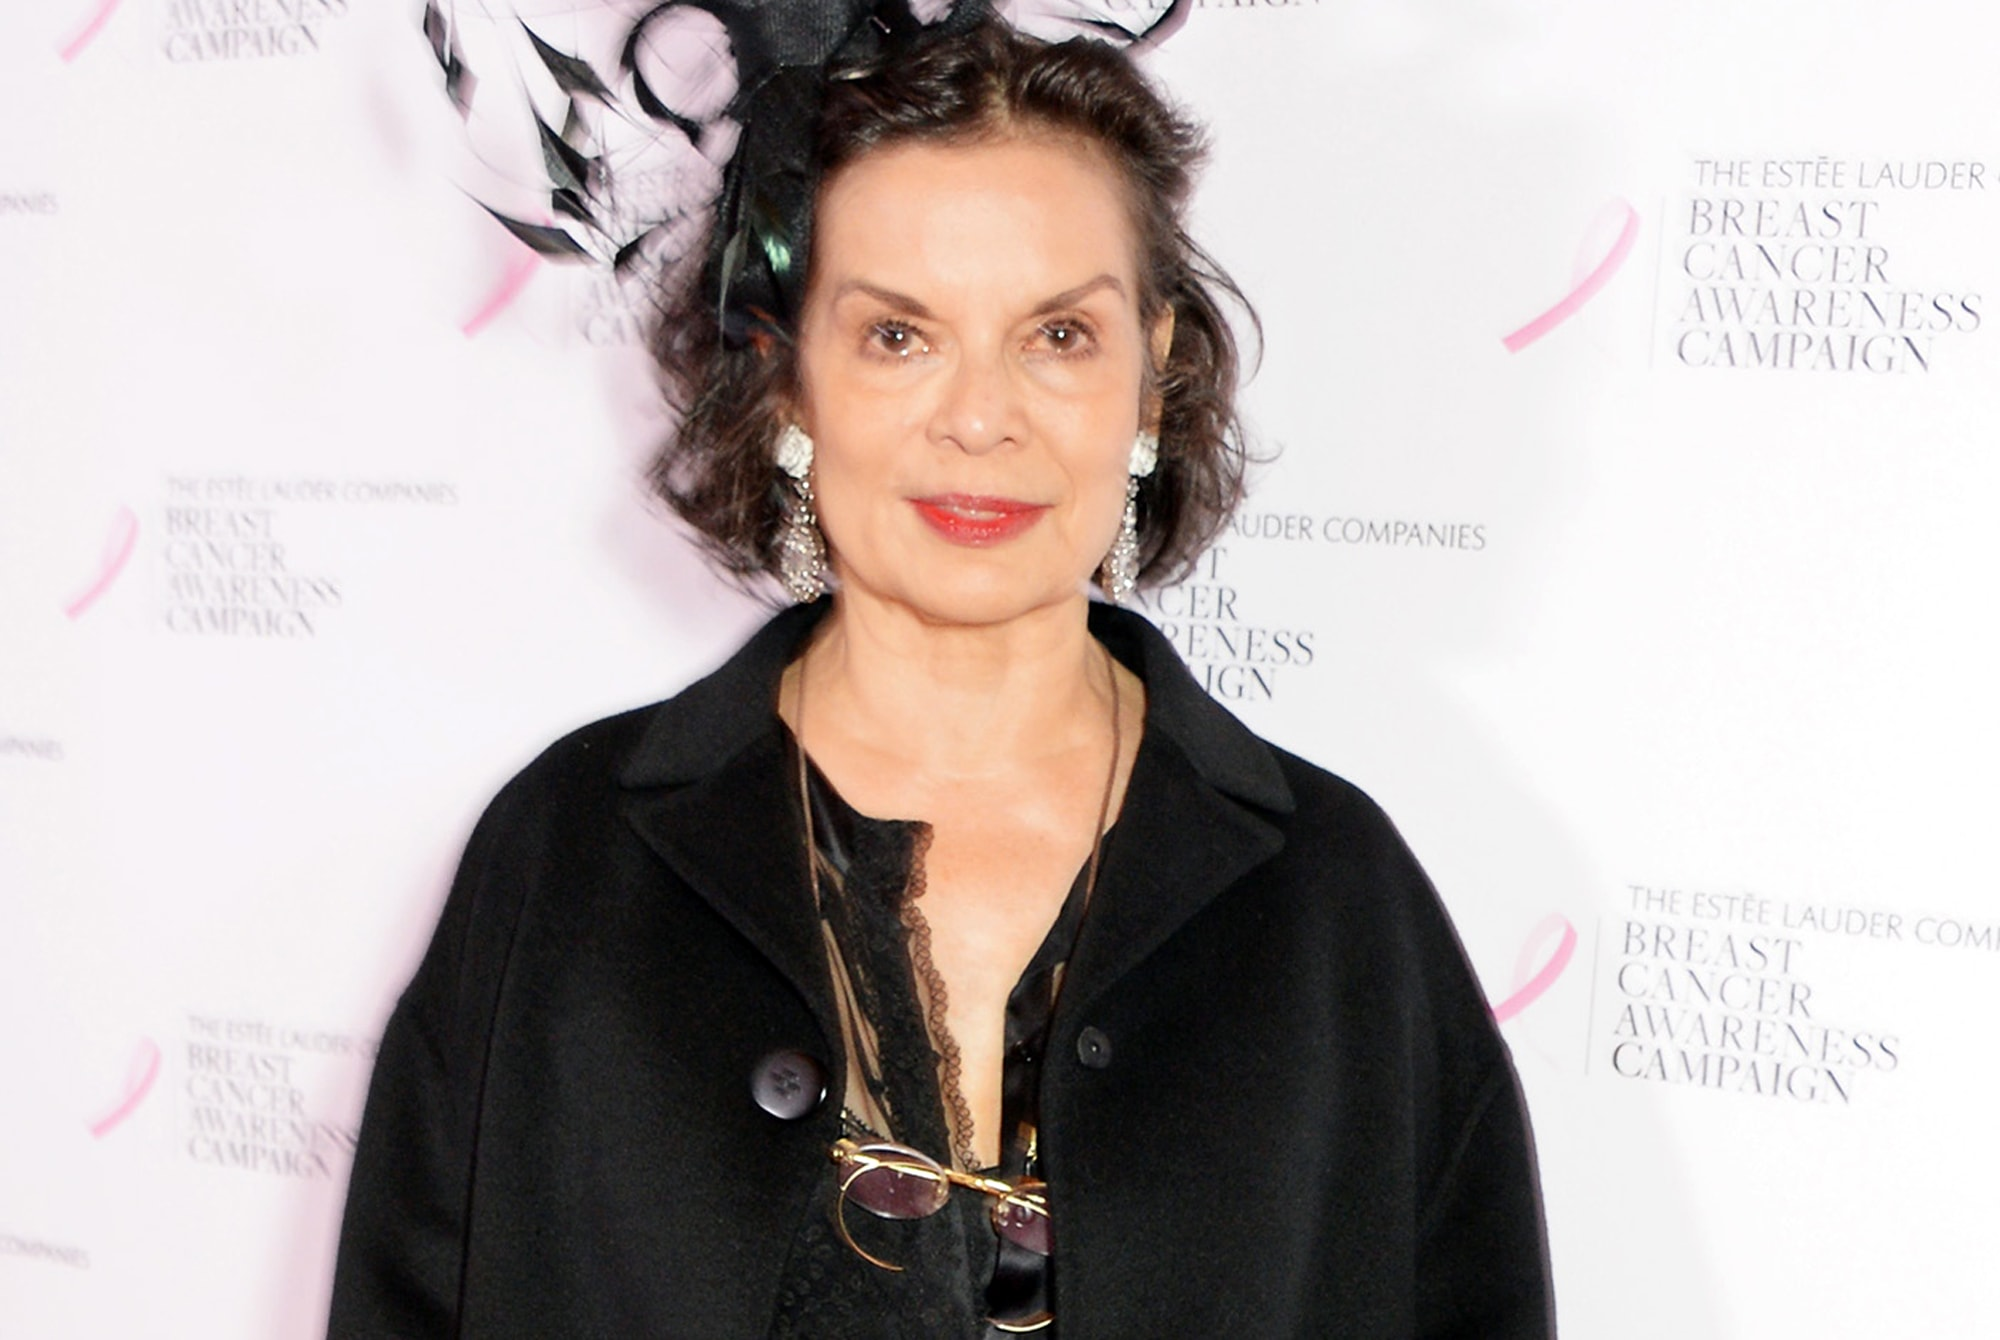 Bianca Jagger Wallpapers hd